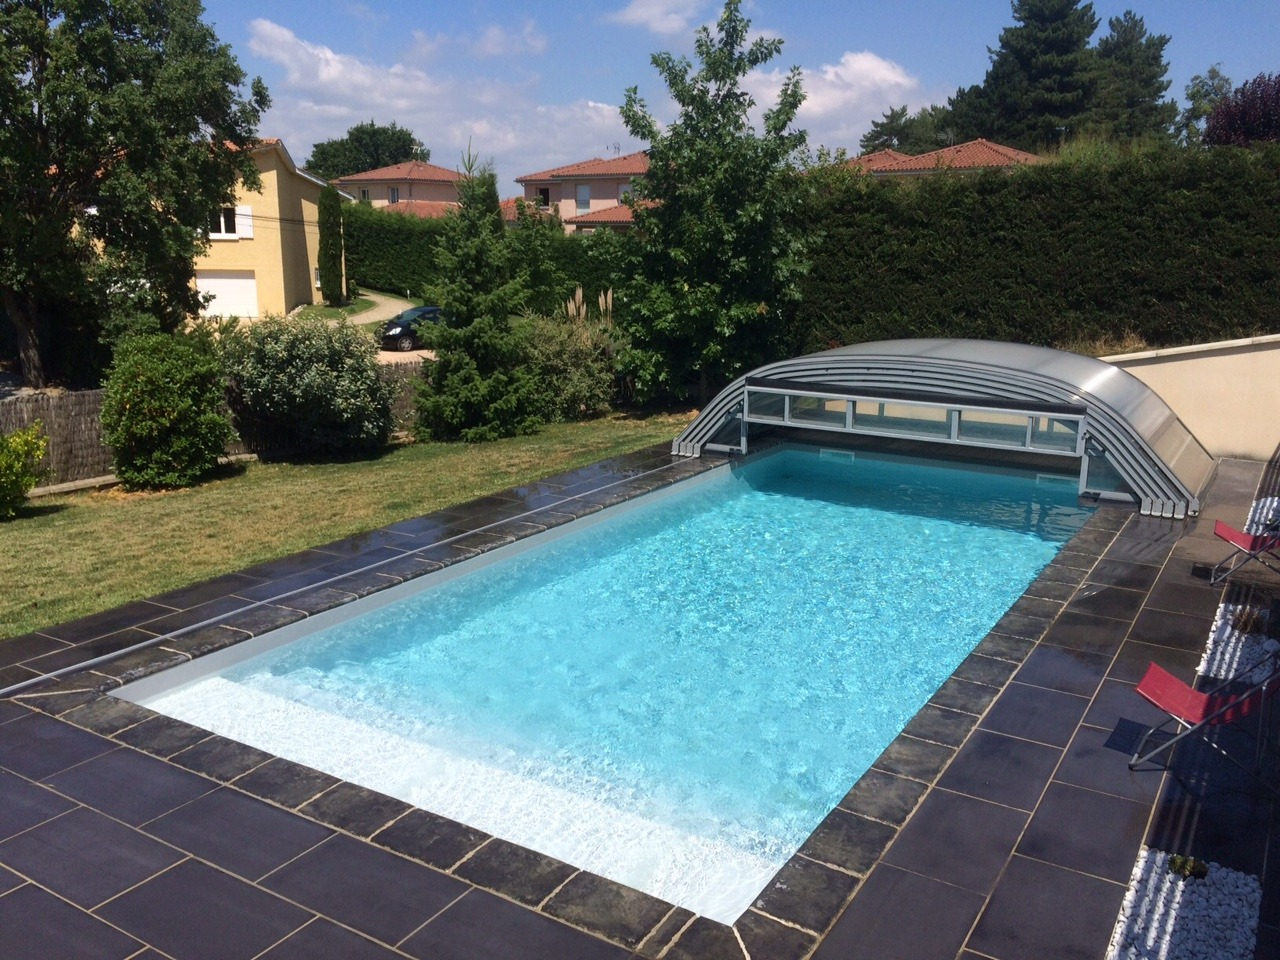 Elitys mianso abri de piscine bas t lescopique ec 39 creation for Abri de piscine bas